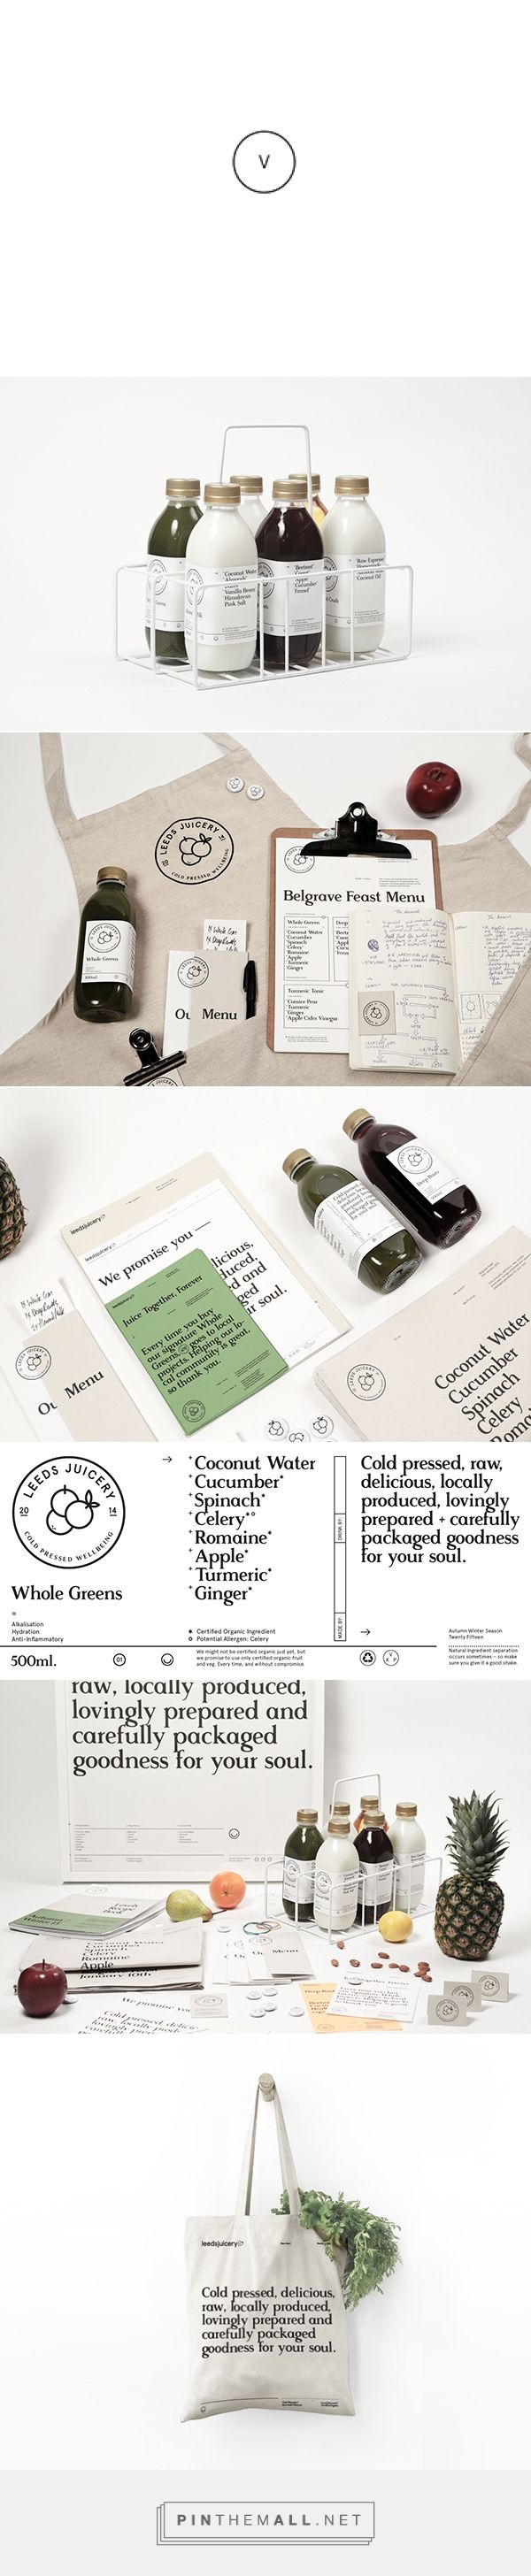 Leeds Juicery on Behance curated by Packaging Diva PD.